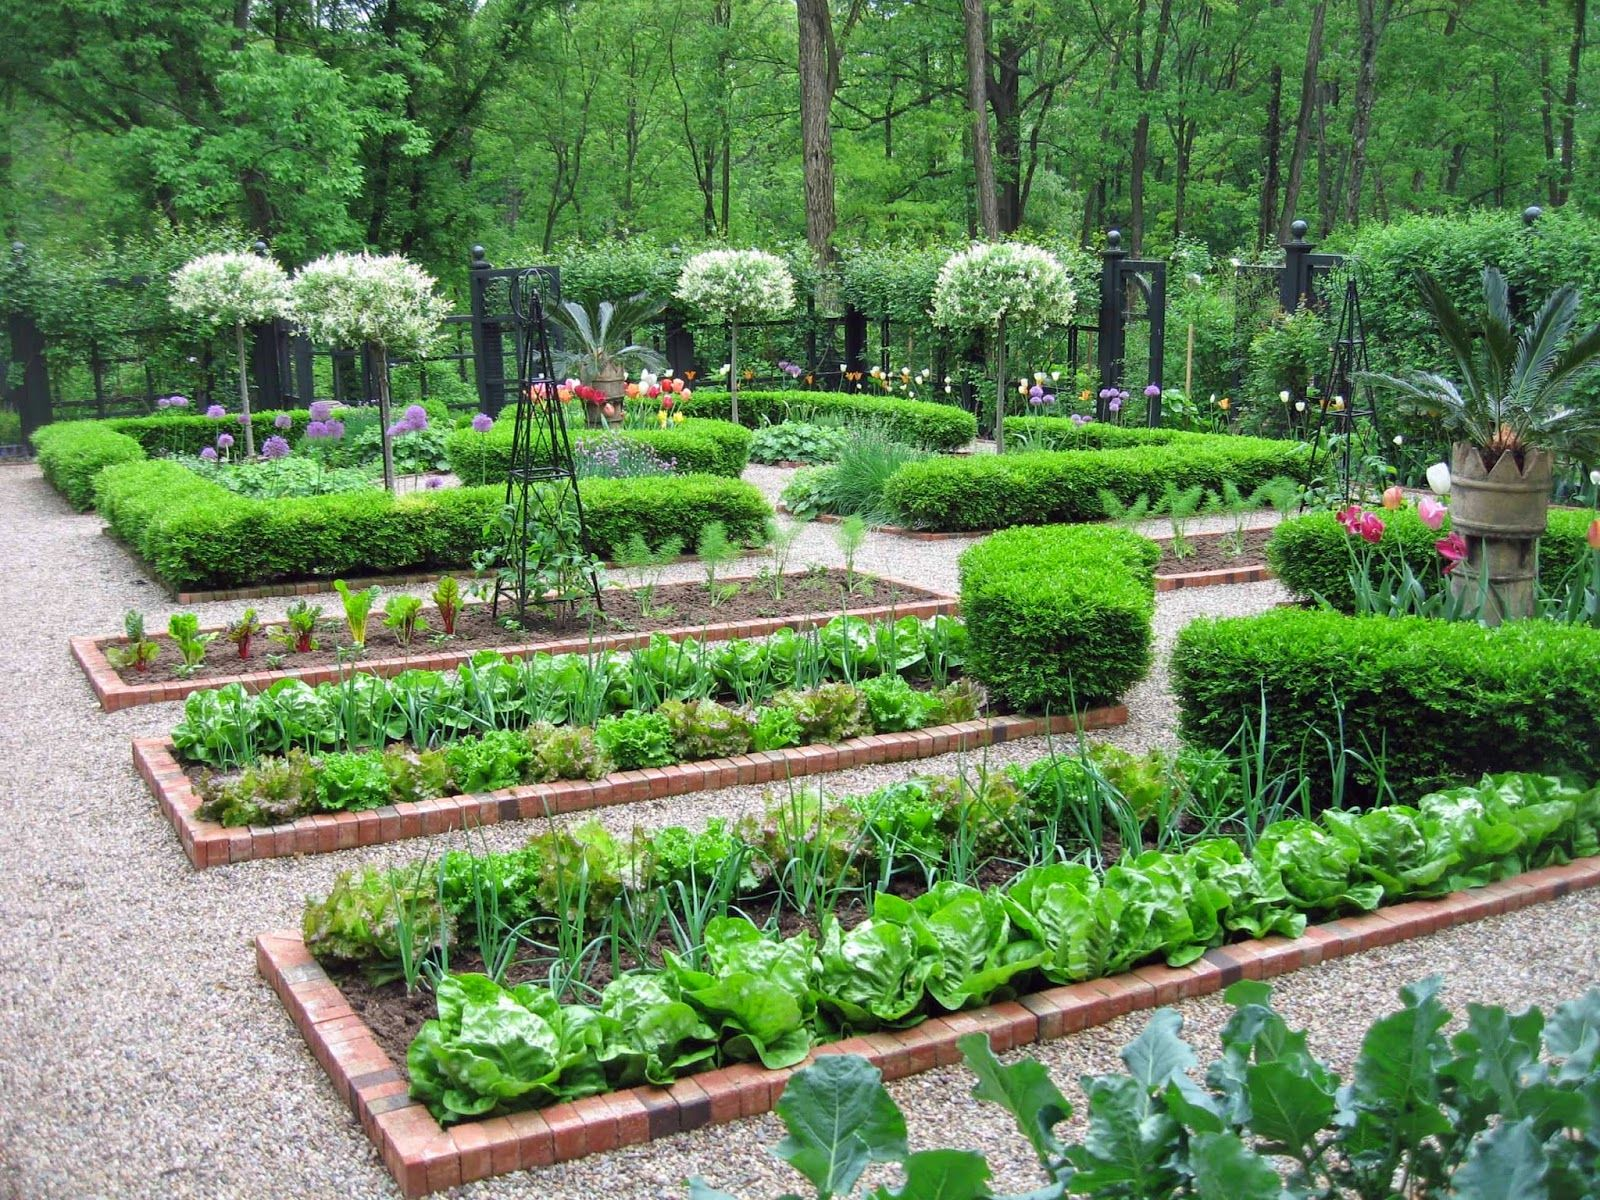 A potager is the French term for an ornamental vegetable or kitchen ...